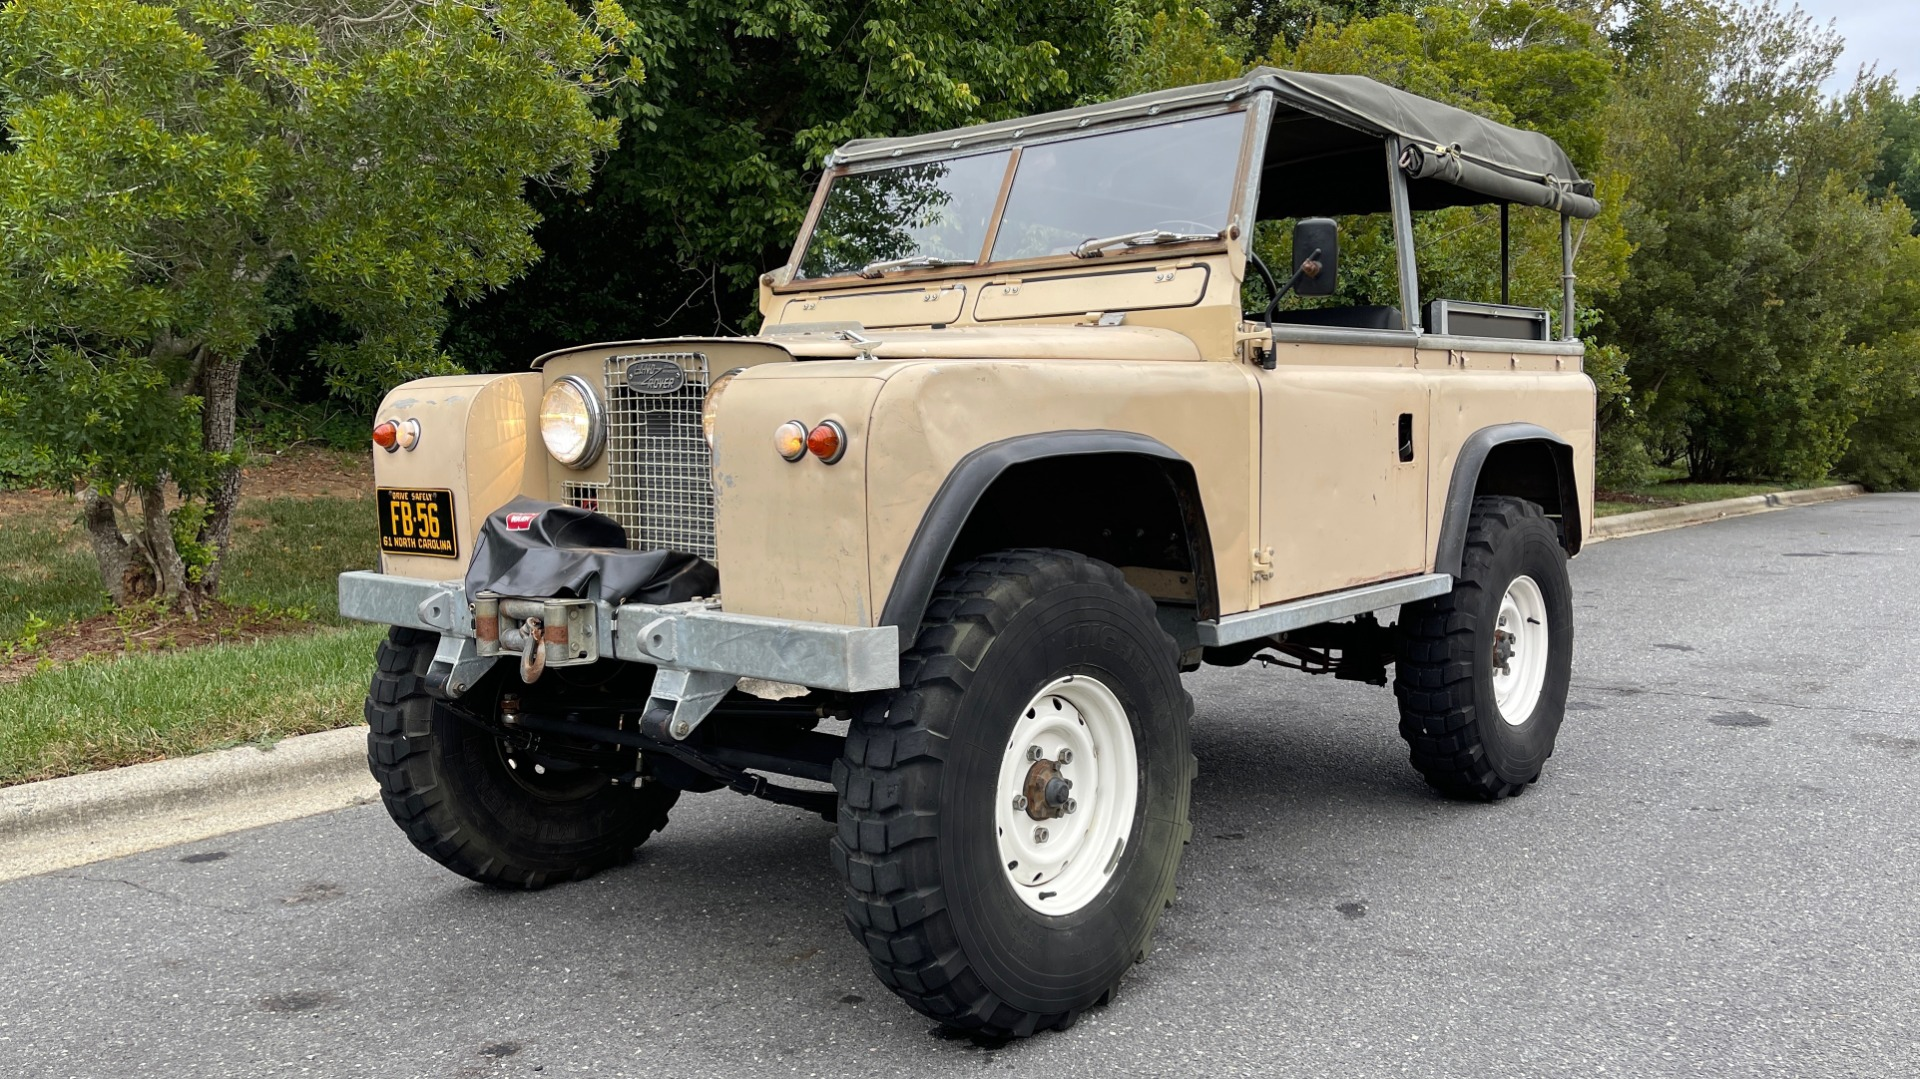 Used 1960 Land Rover 88 SERIES II VORTEC 4.8L V8 / 4X4 / 4-SPEED MANUAL / LIFTED / SOFT-TOP for sale $40,995 at Formula Imports in Charlotte NC 28227 4